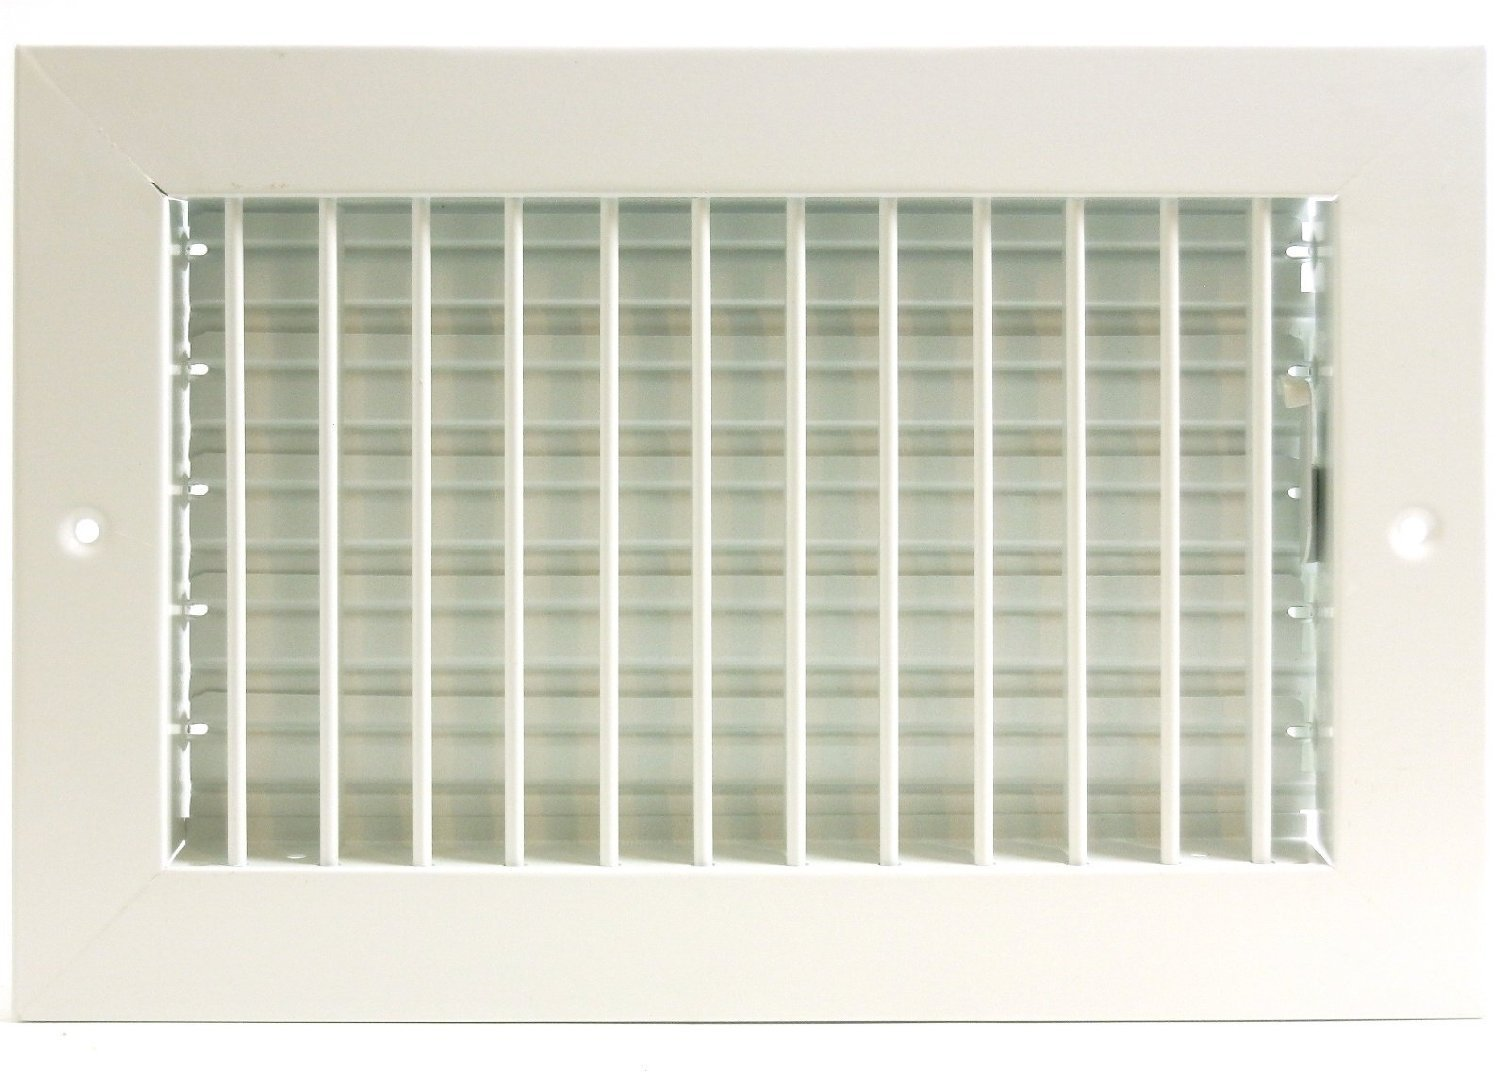 10'' x 8'' ADJUSTABLE DIFFUSER - Vent Duct Cover - Grille Register - Sidewall or Cieling - High Airflow